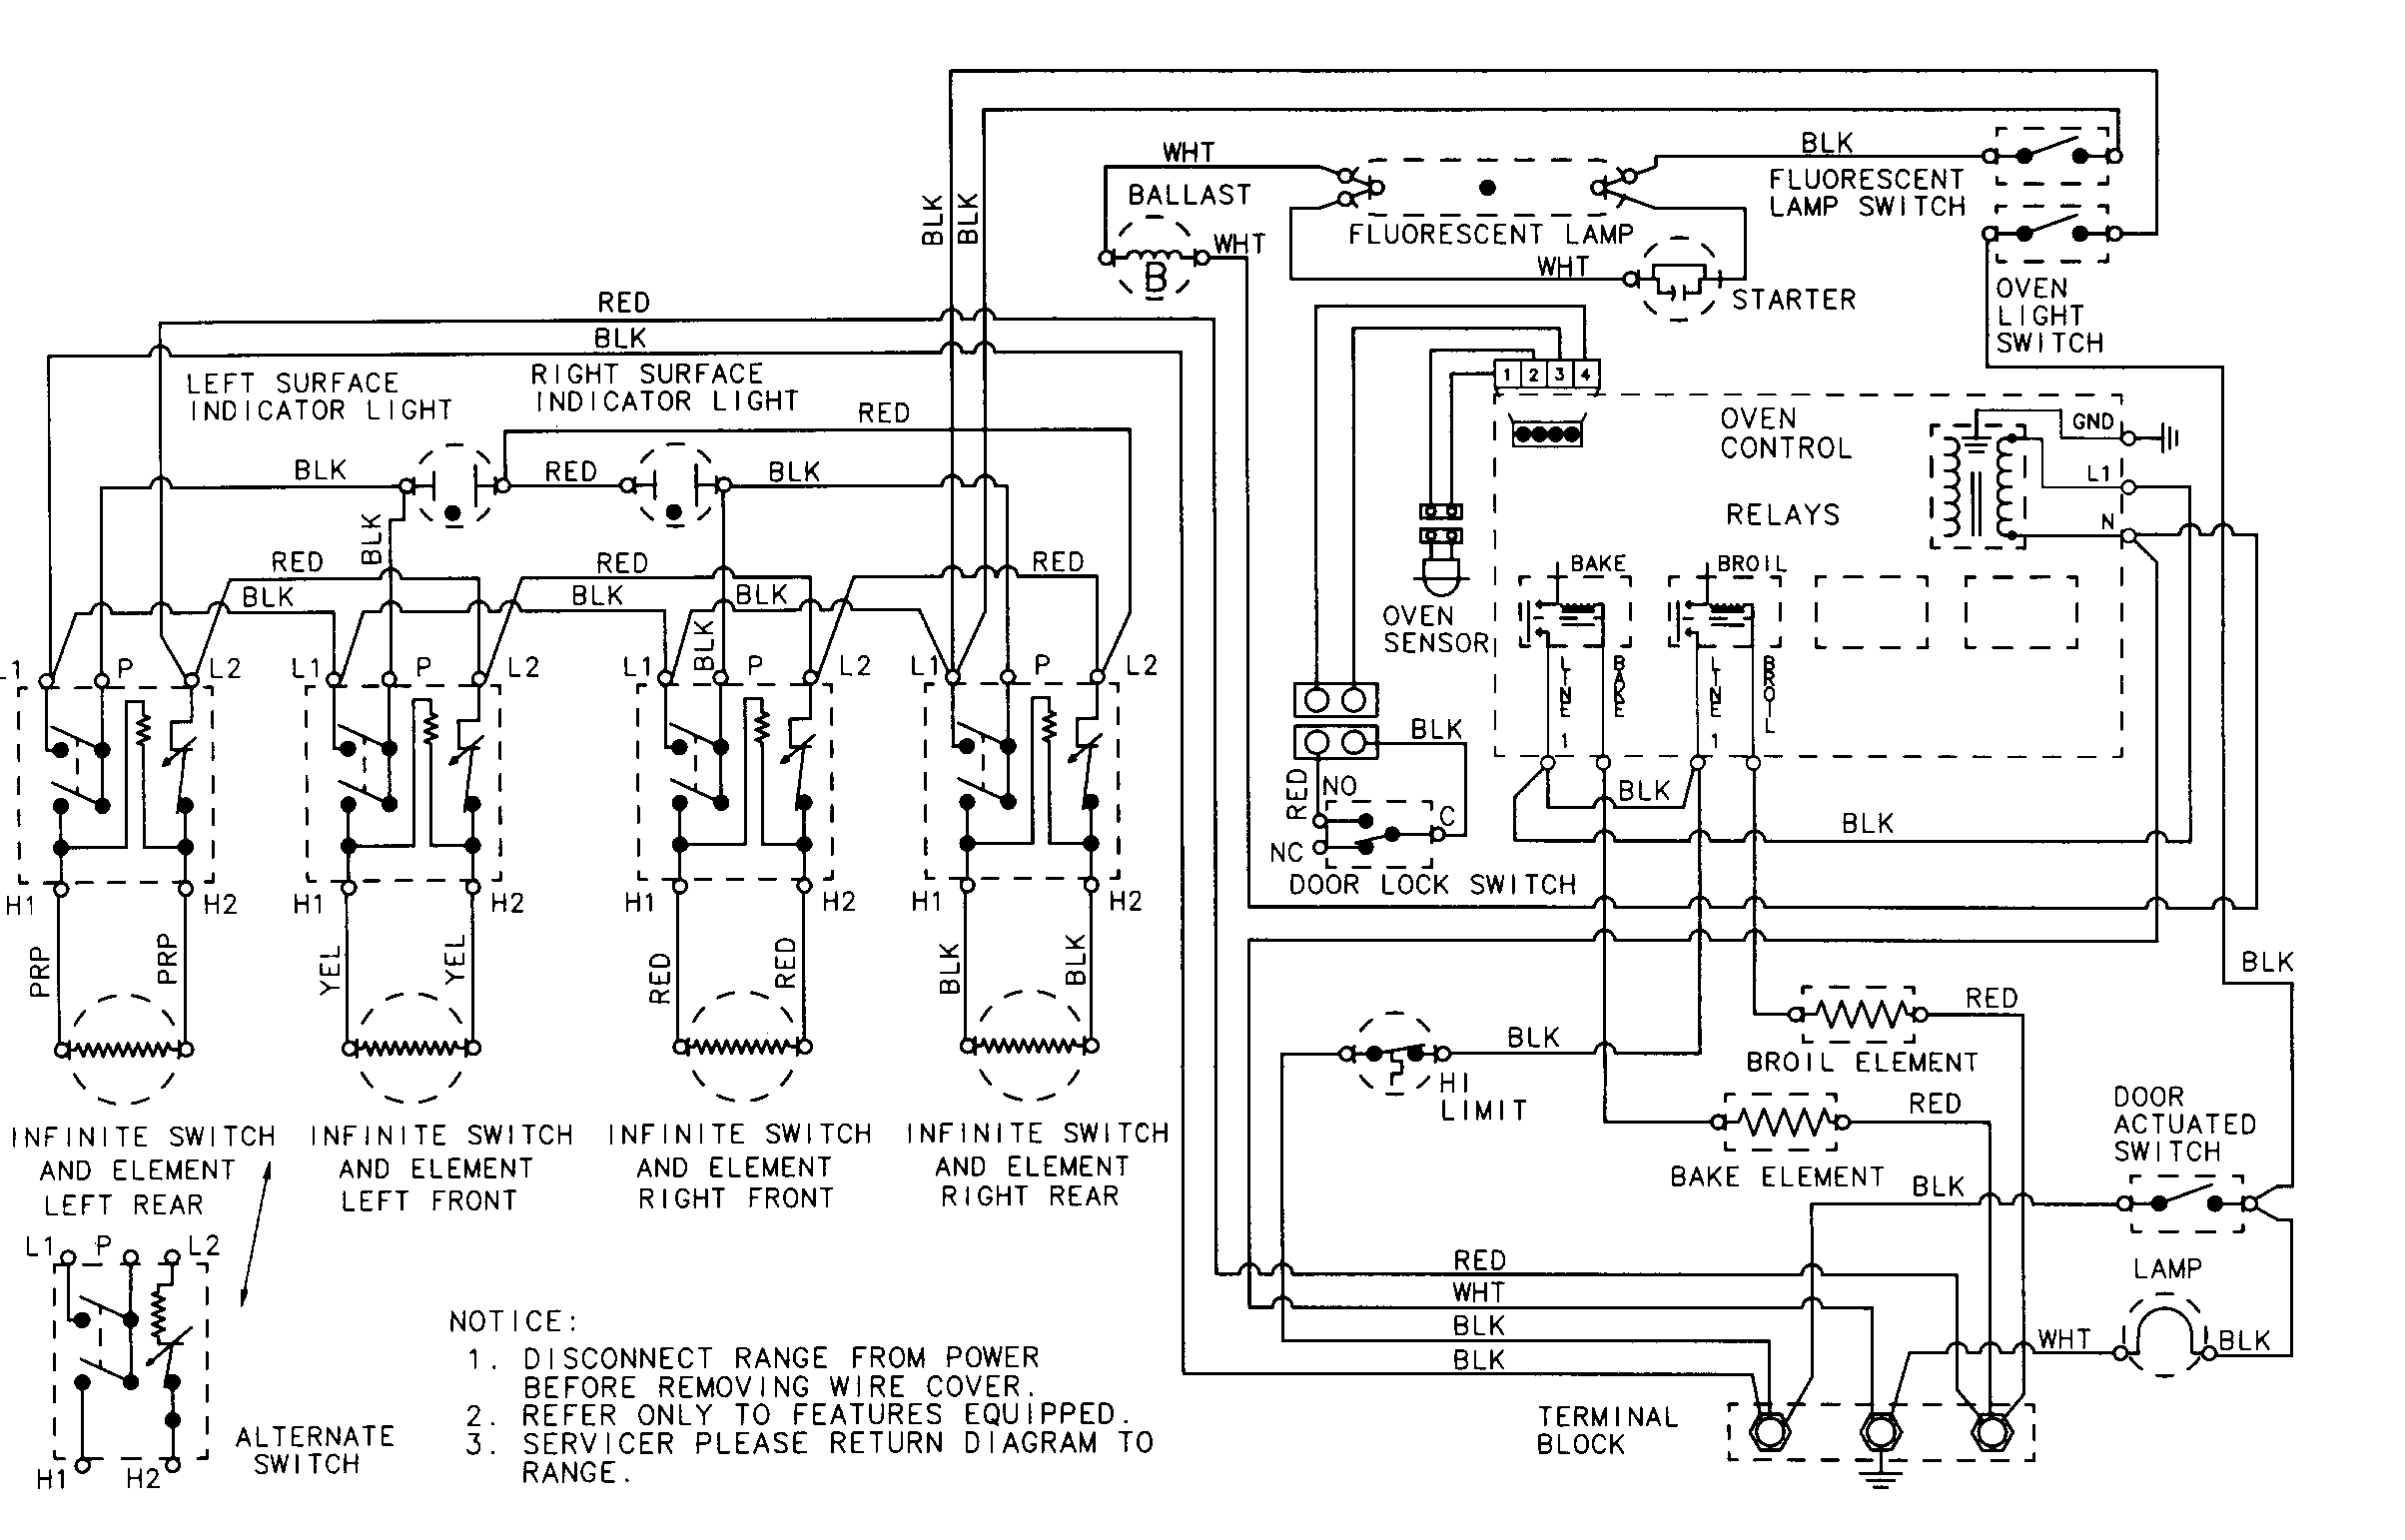 tag stove wiring diagram tag wiring diagrams tag stove wiring diagram